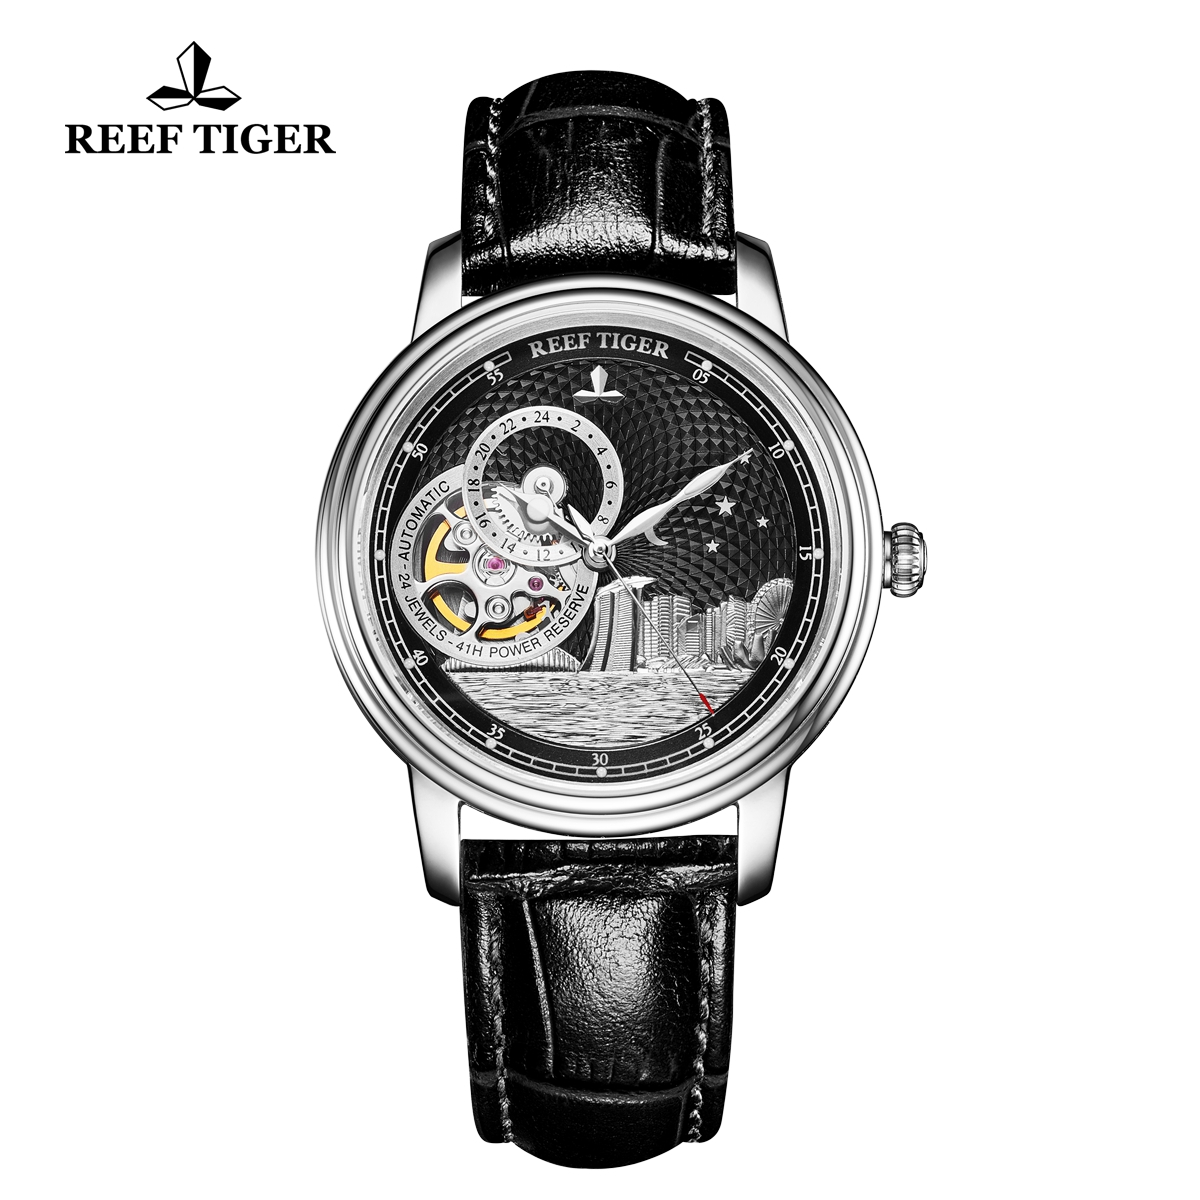 Reef Tiger Seattle Singapore Fashion Steel Black Dial Leather Strap Automatic Watch RGA1739-YBB